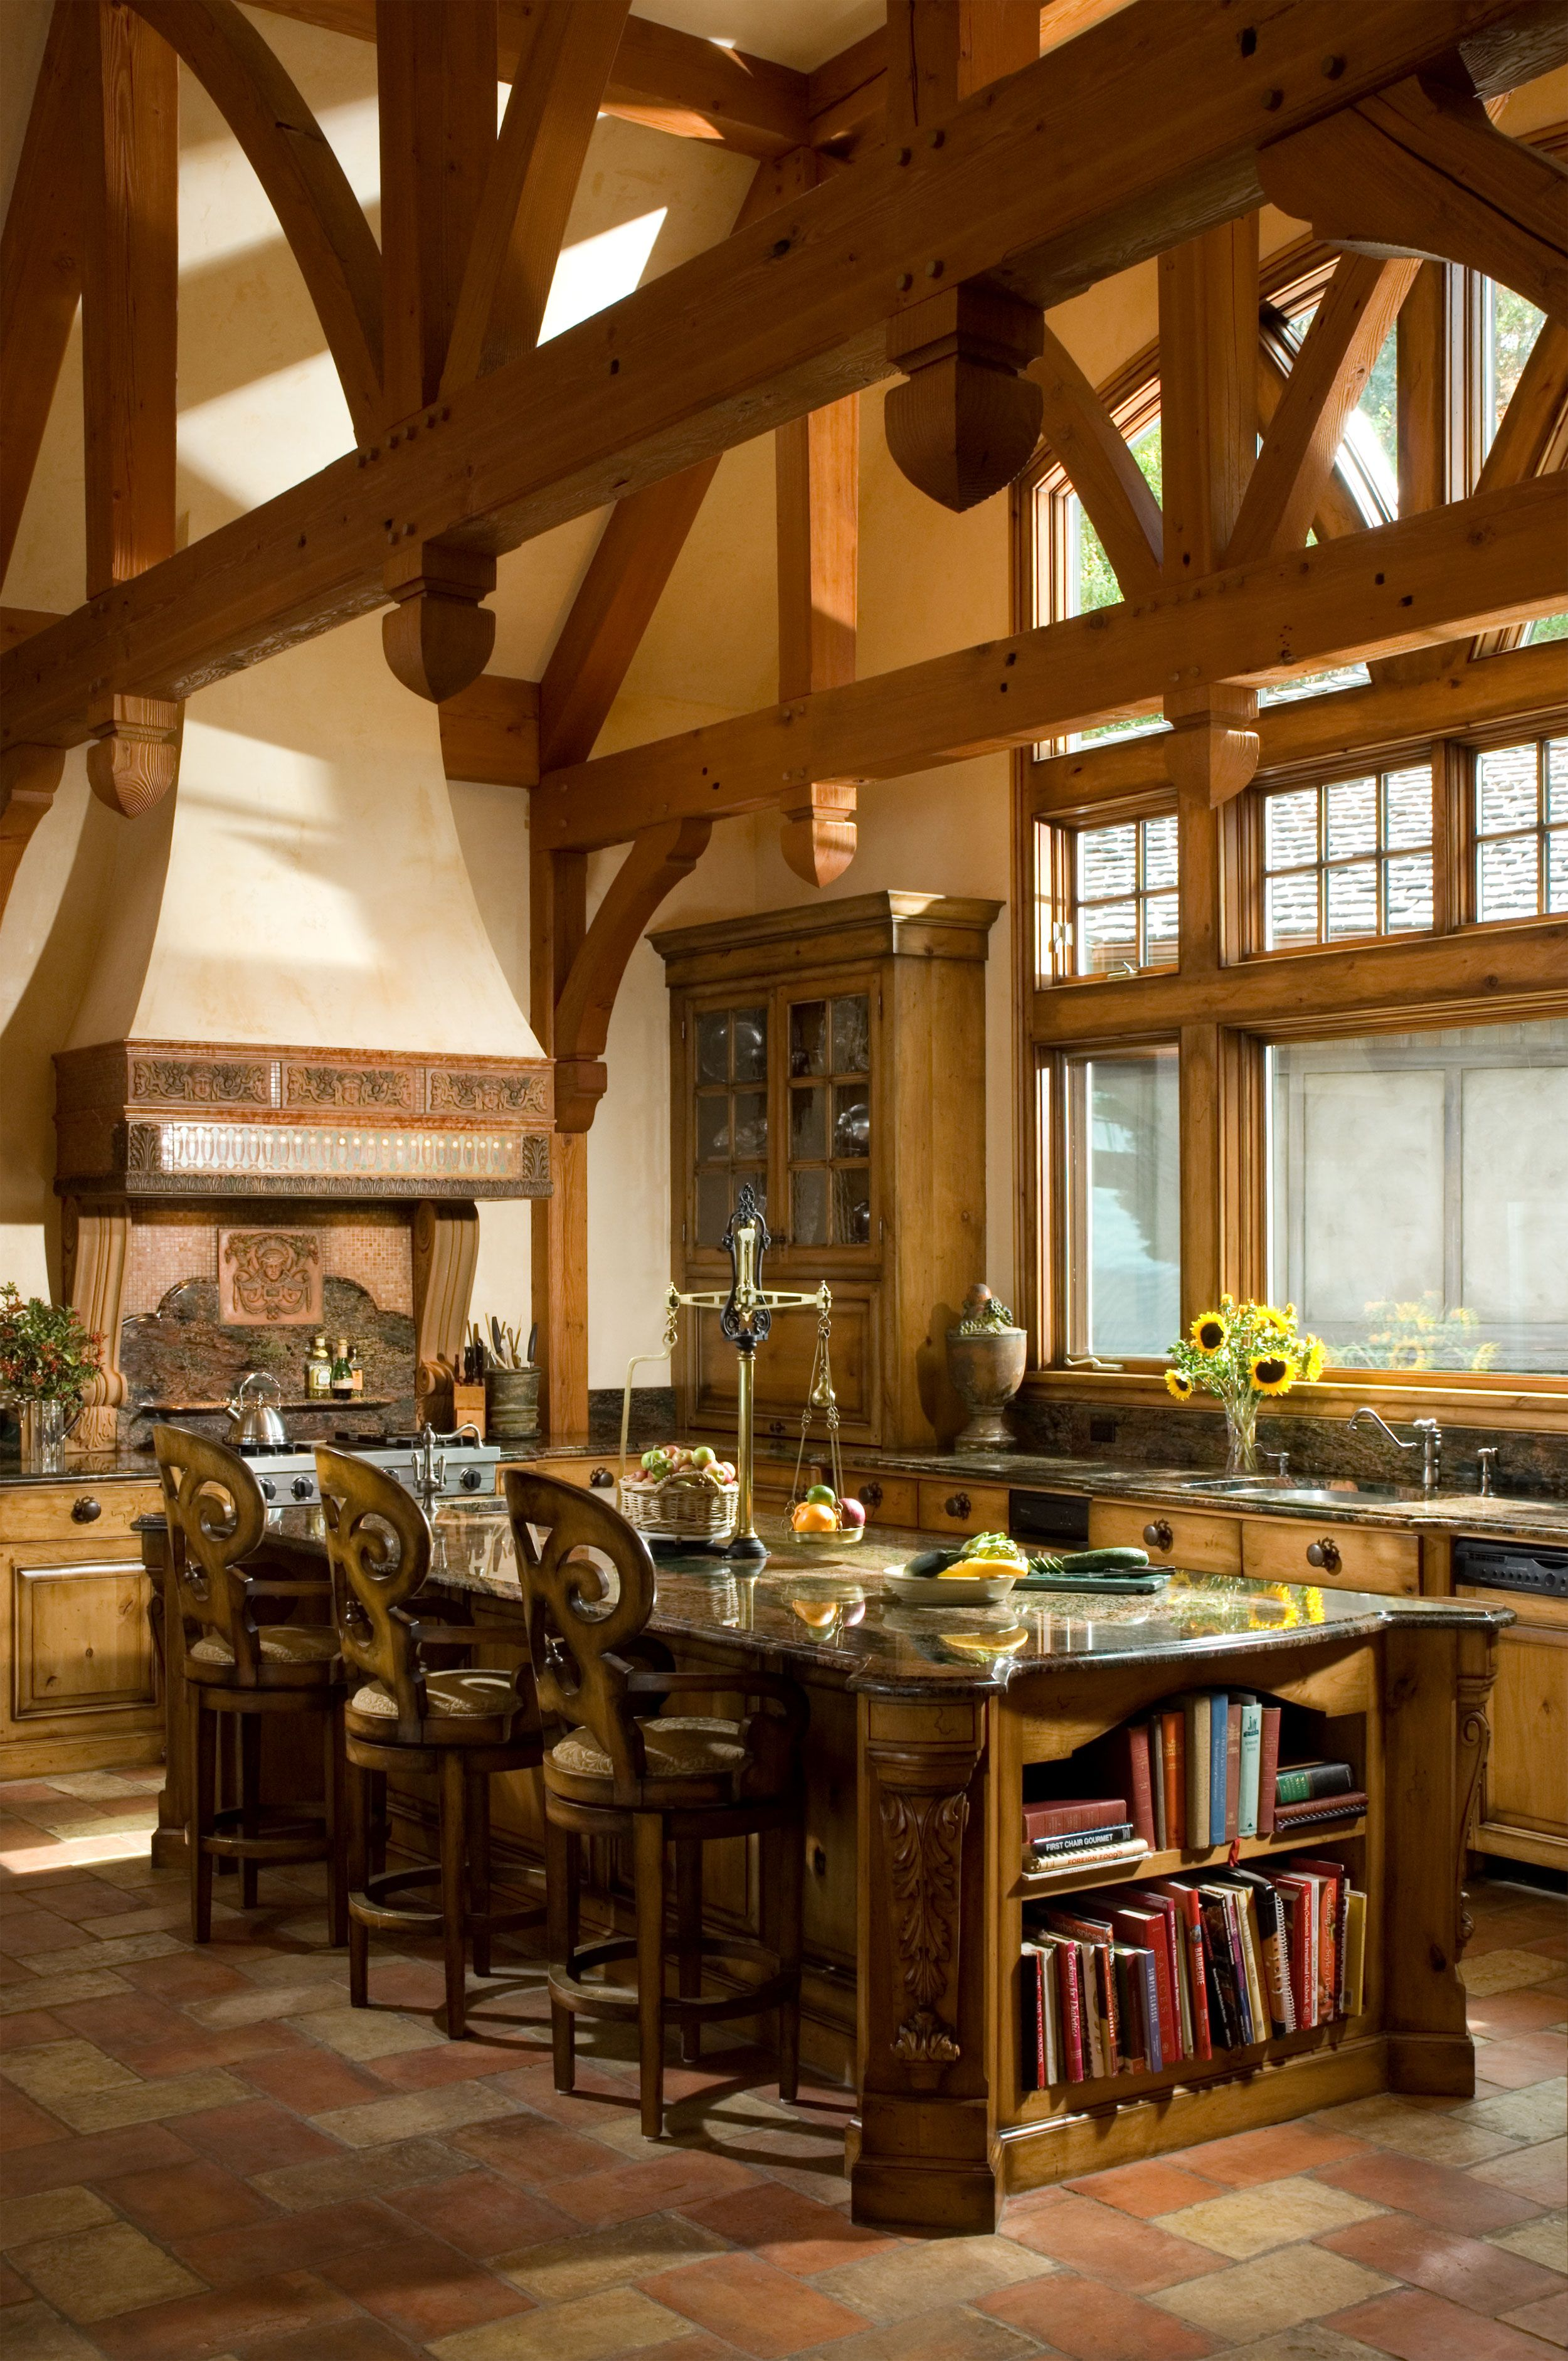 Sophisticated Country Kitchen With An Open Beamed Ceiling